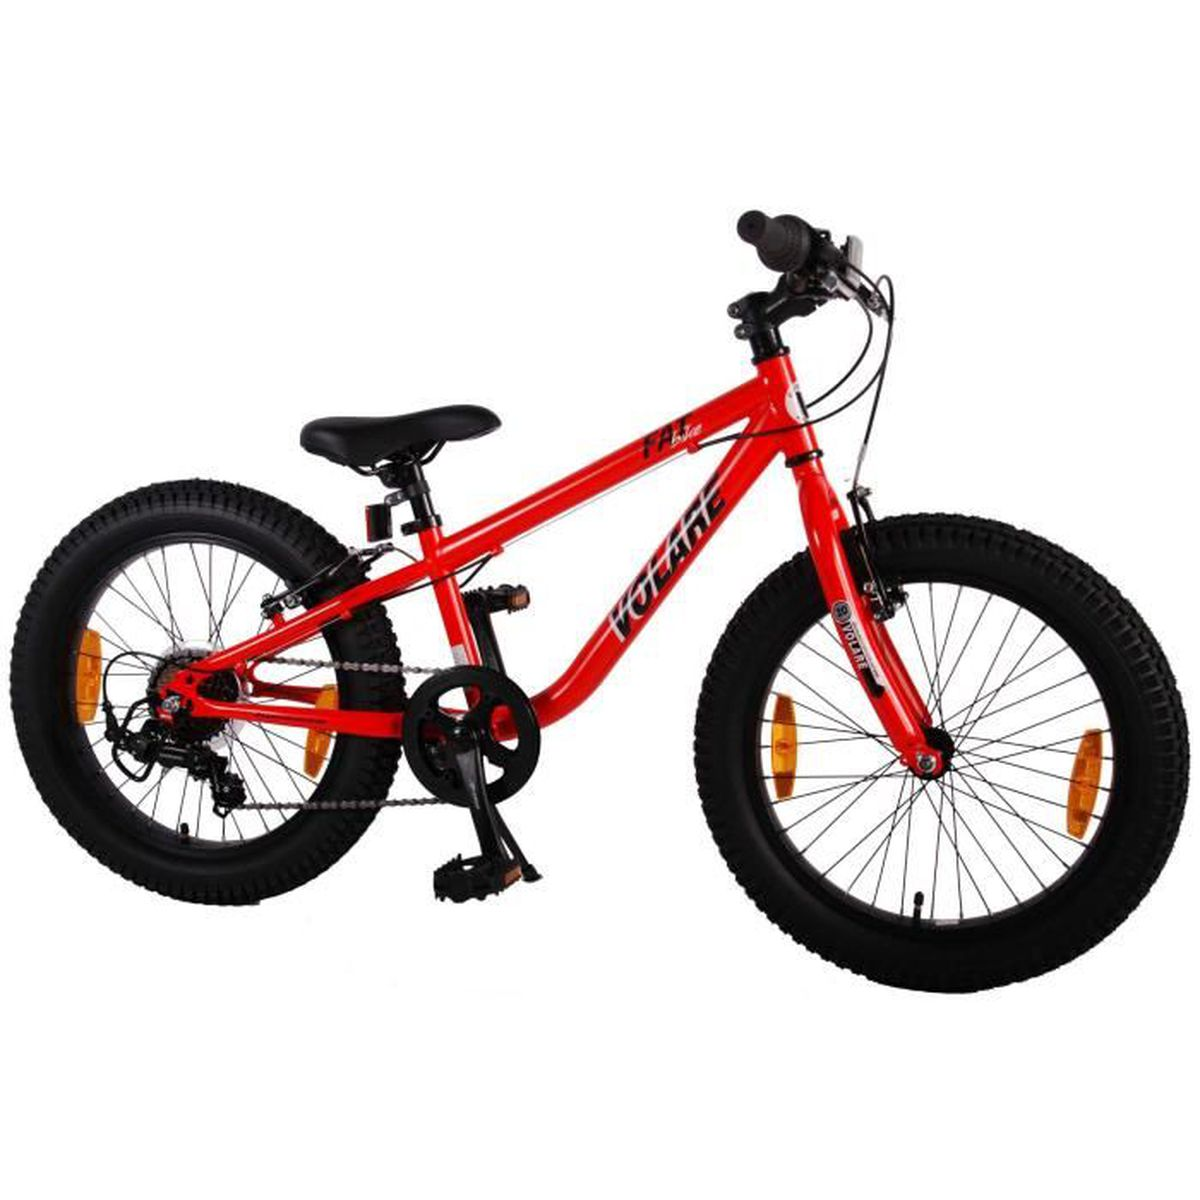 cyclo vel vtt enfant avec des pneus de 20 pouces extra large avec shimano 7 vitesses d 39 orange. Black Bedroom Furniture Sets. Home Design Ideas